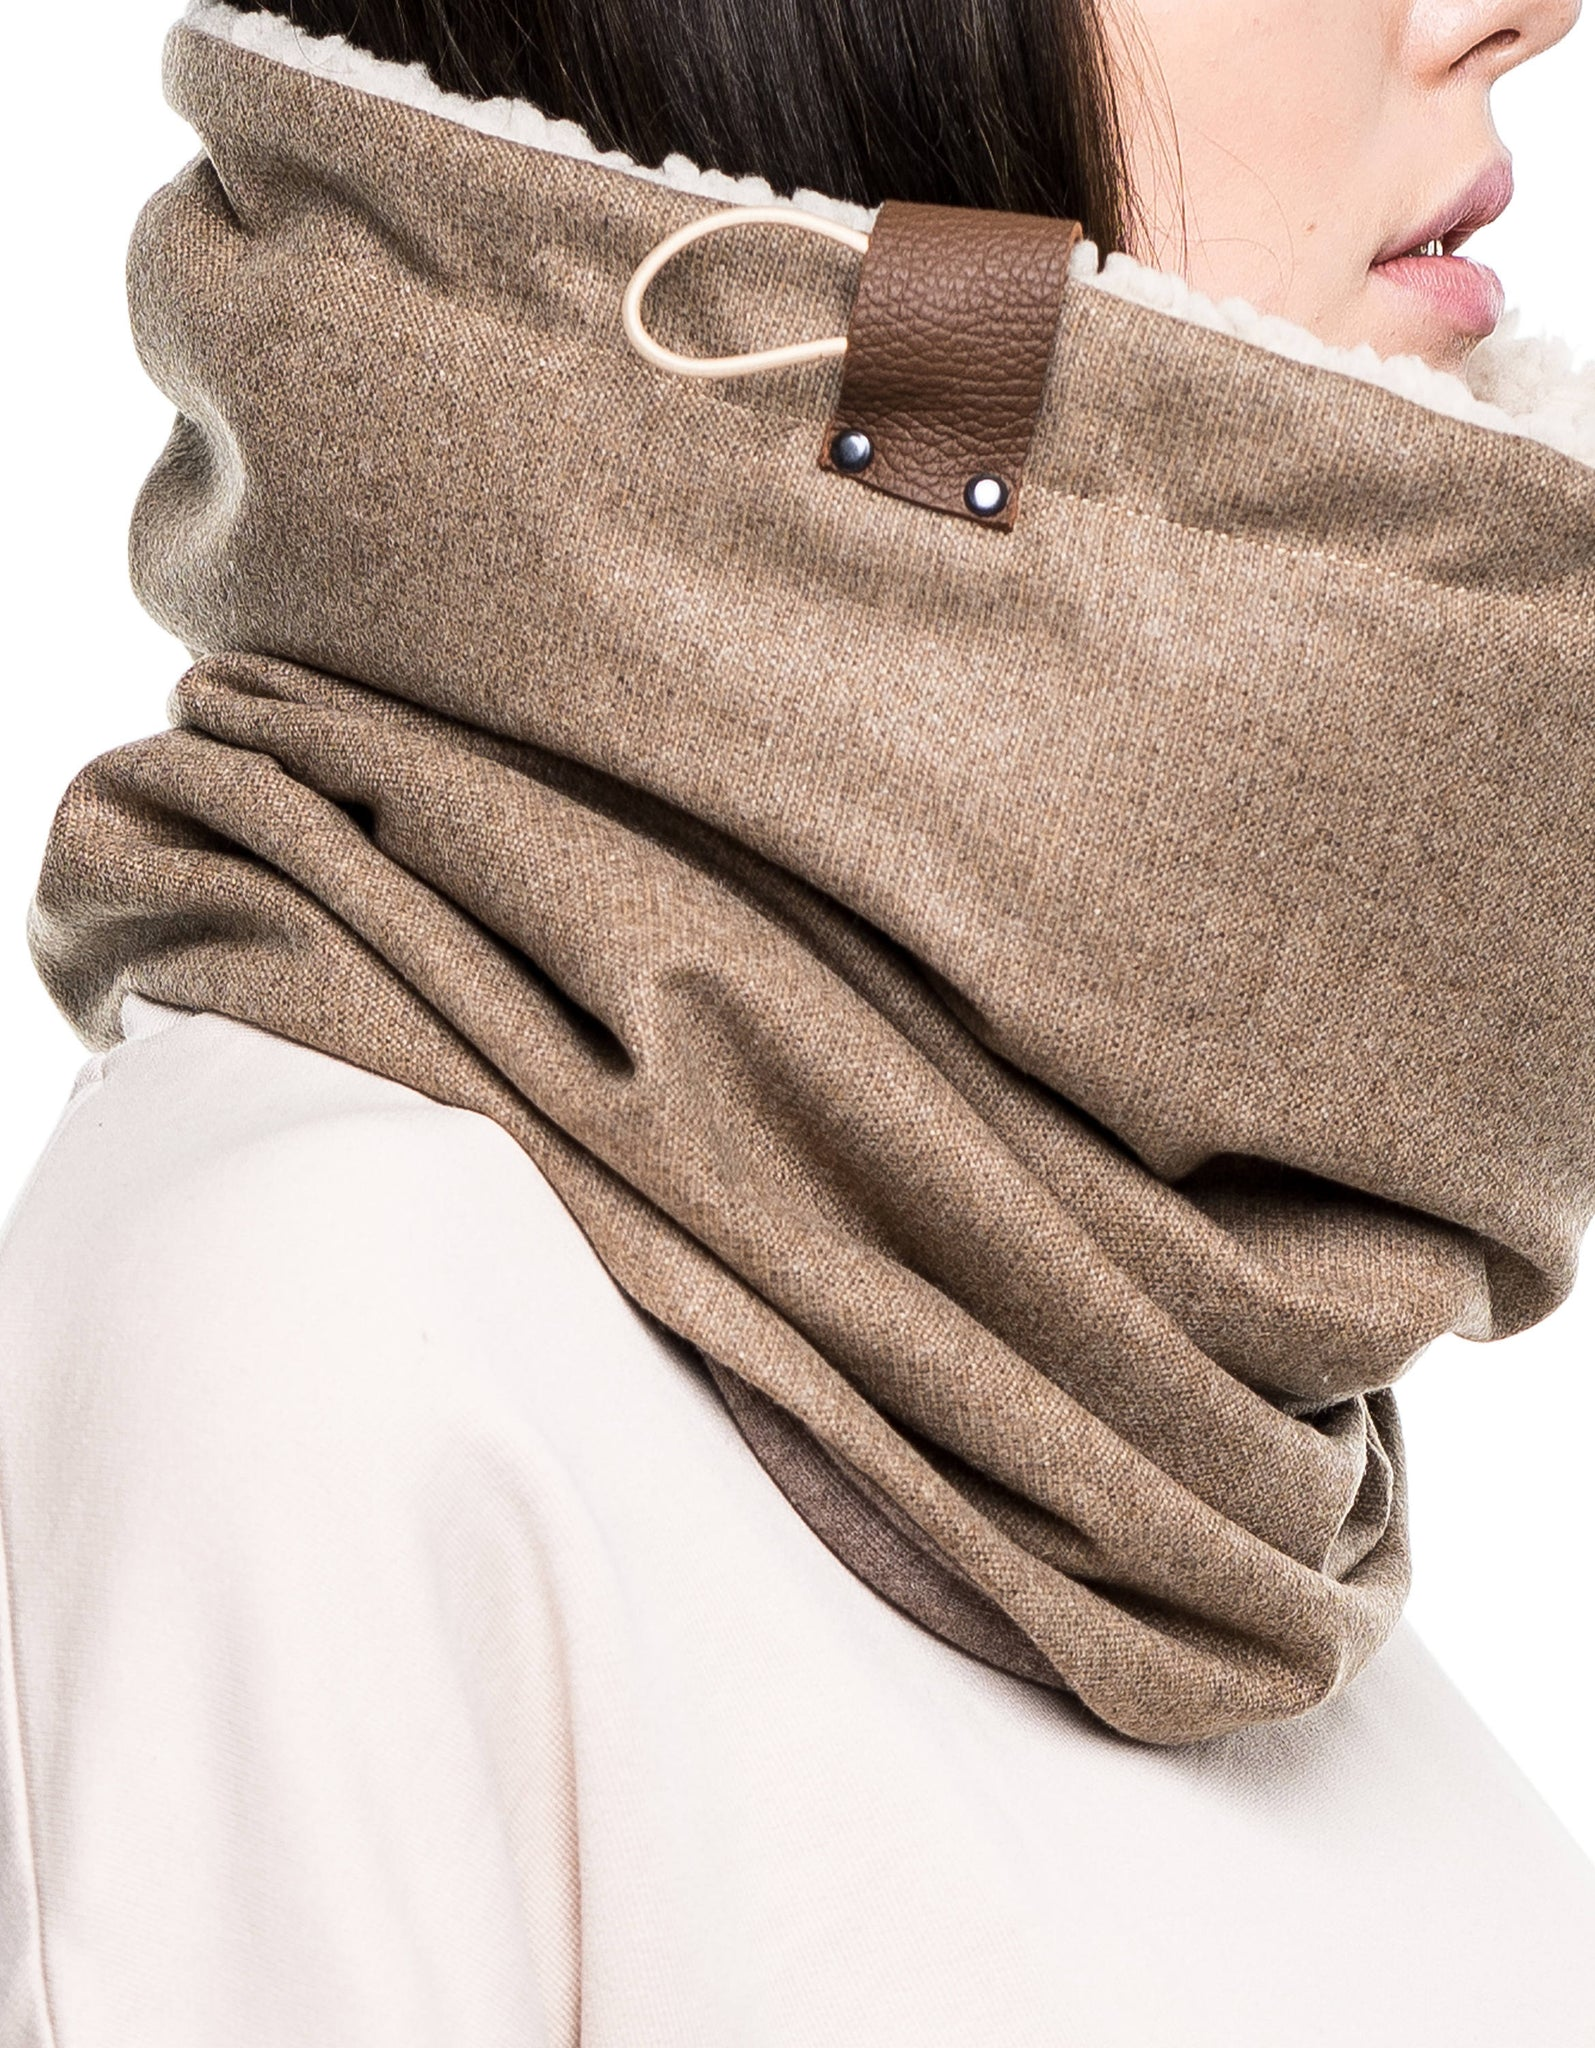 Wool cowl scarf, Chunky scarf, Chunky cowl in light camel wool lined with faux lamb